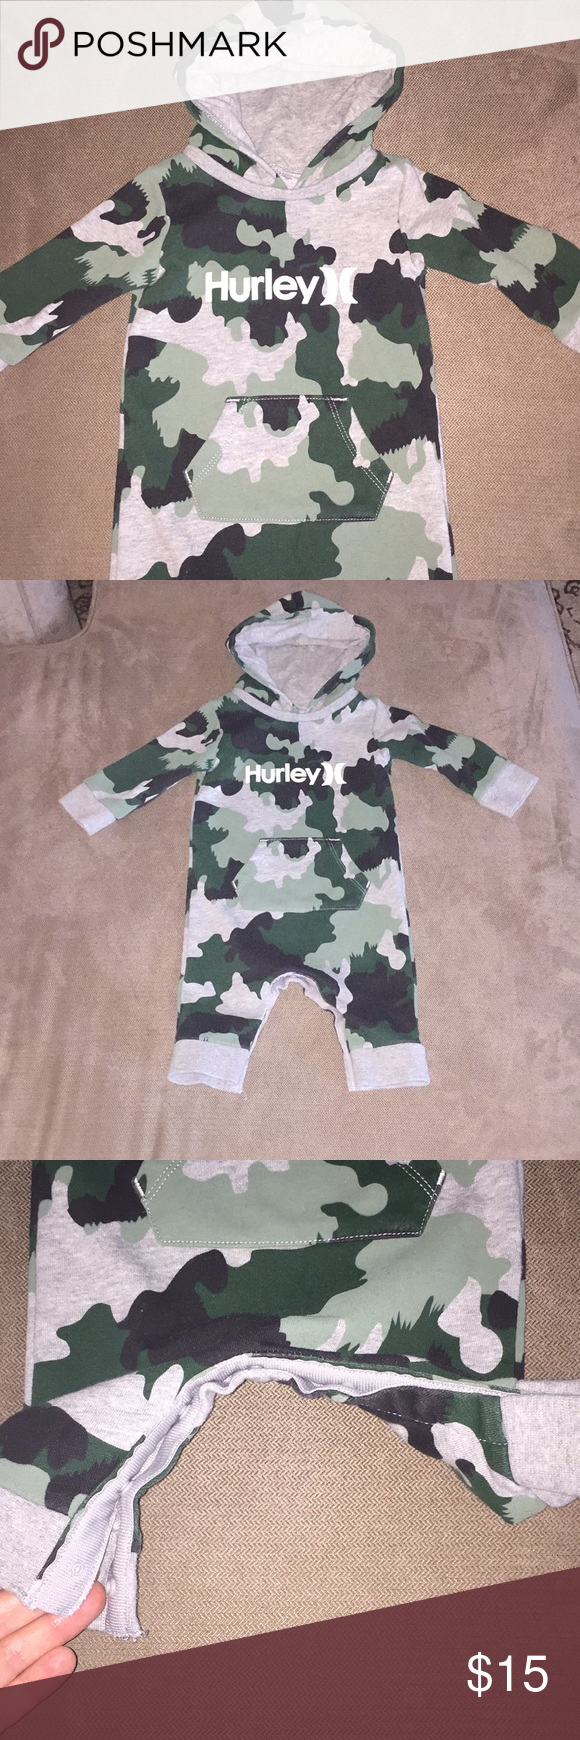 330eefc5e4e Hurley Camo Hoodie Romper Loved this cute one piece!! Hurley camp hoodie is  great